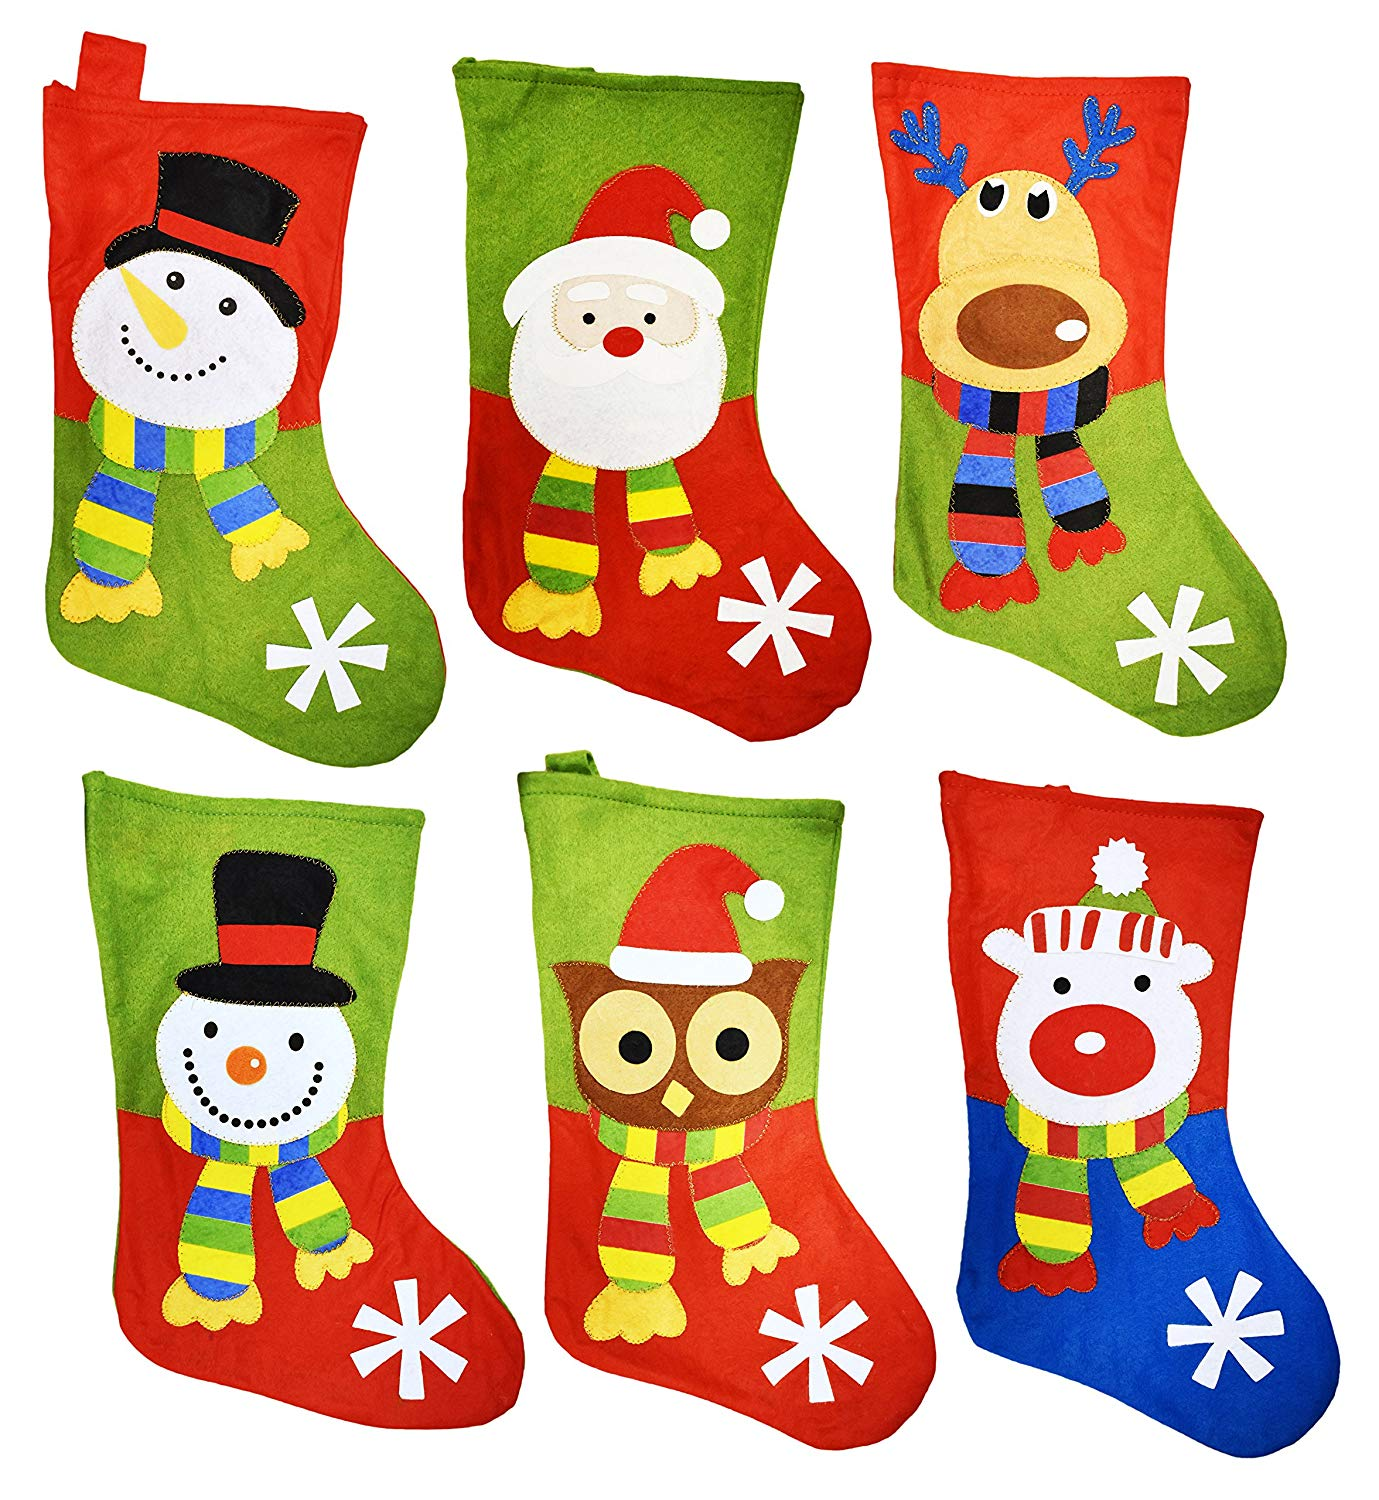 "18"" Felt Christmas Stockings with Hanging Tag - Set of 6 (Designs Include: Santa, Snowman, Reindeer, Polar Bear, & Owl)"